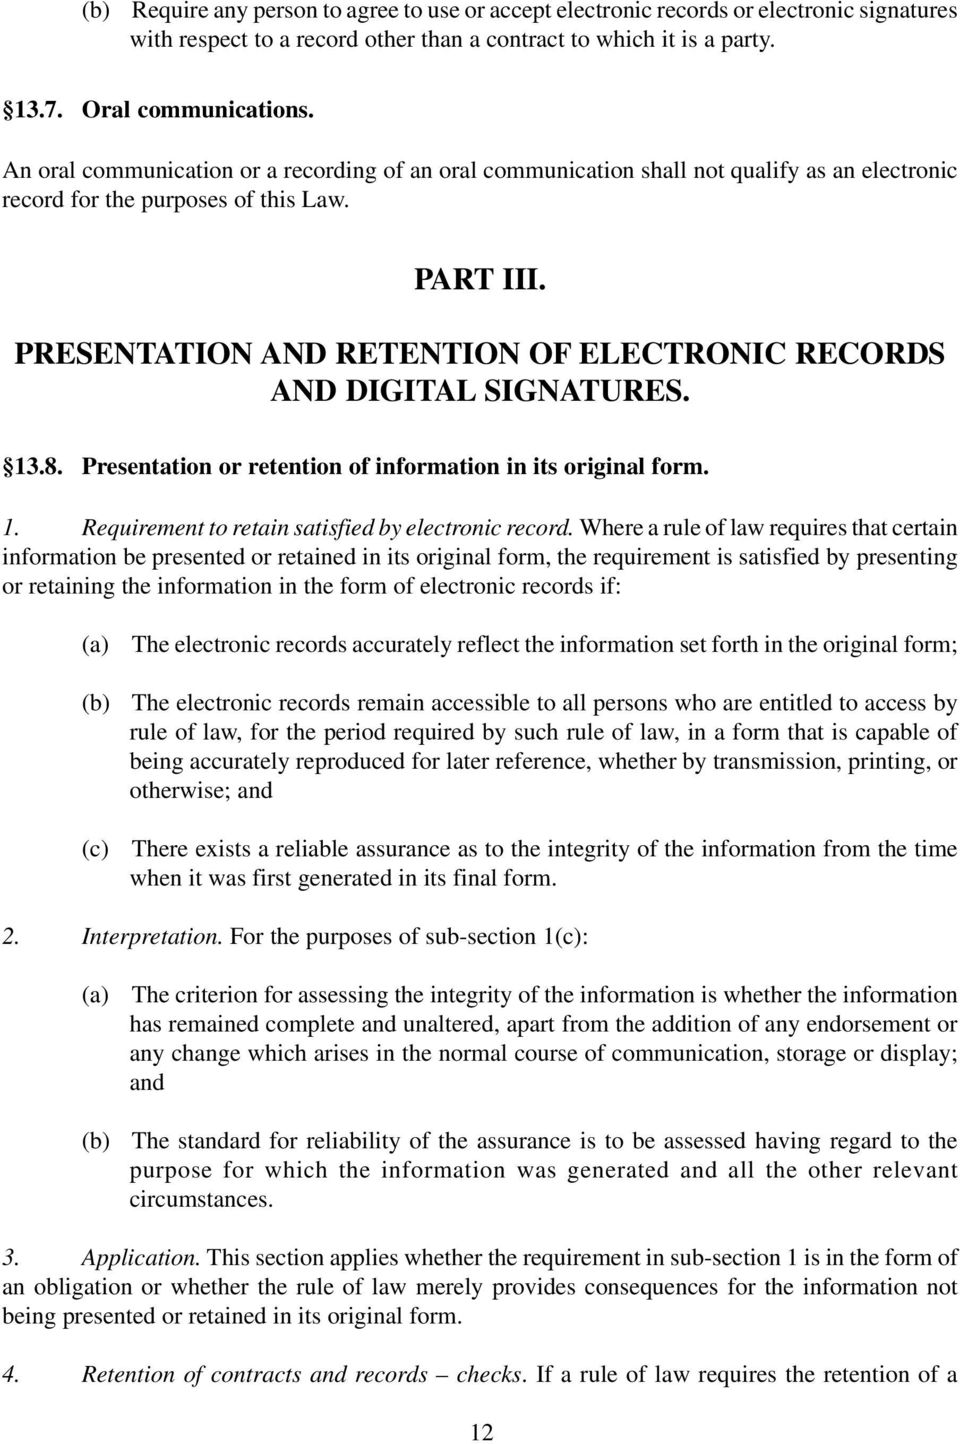 PRESENTATION AND RETENTION OF ELECTRONIC RECORDS AND DIGITAL SIGNATURES. 13.8. Presentation or retention of information in its original form. 1. Requirement to retain satisfied by electronic record.